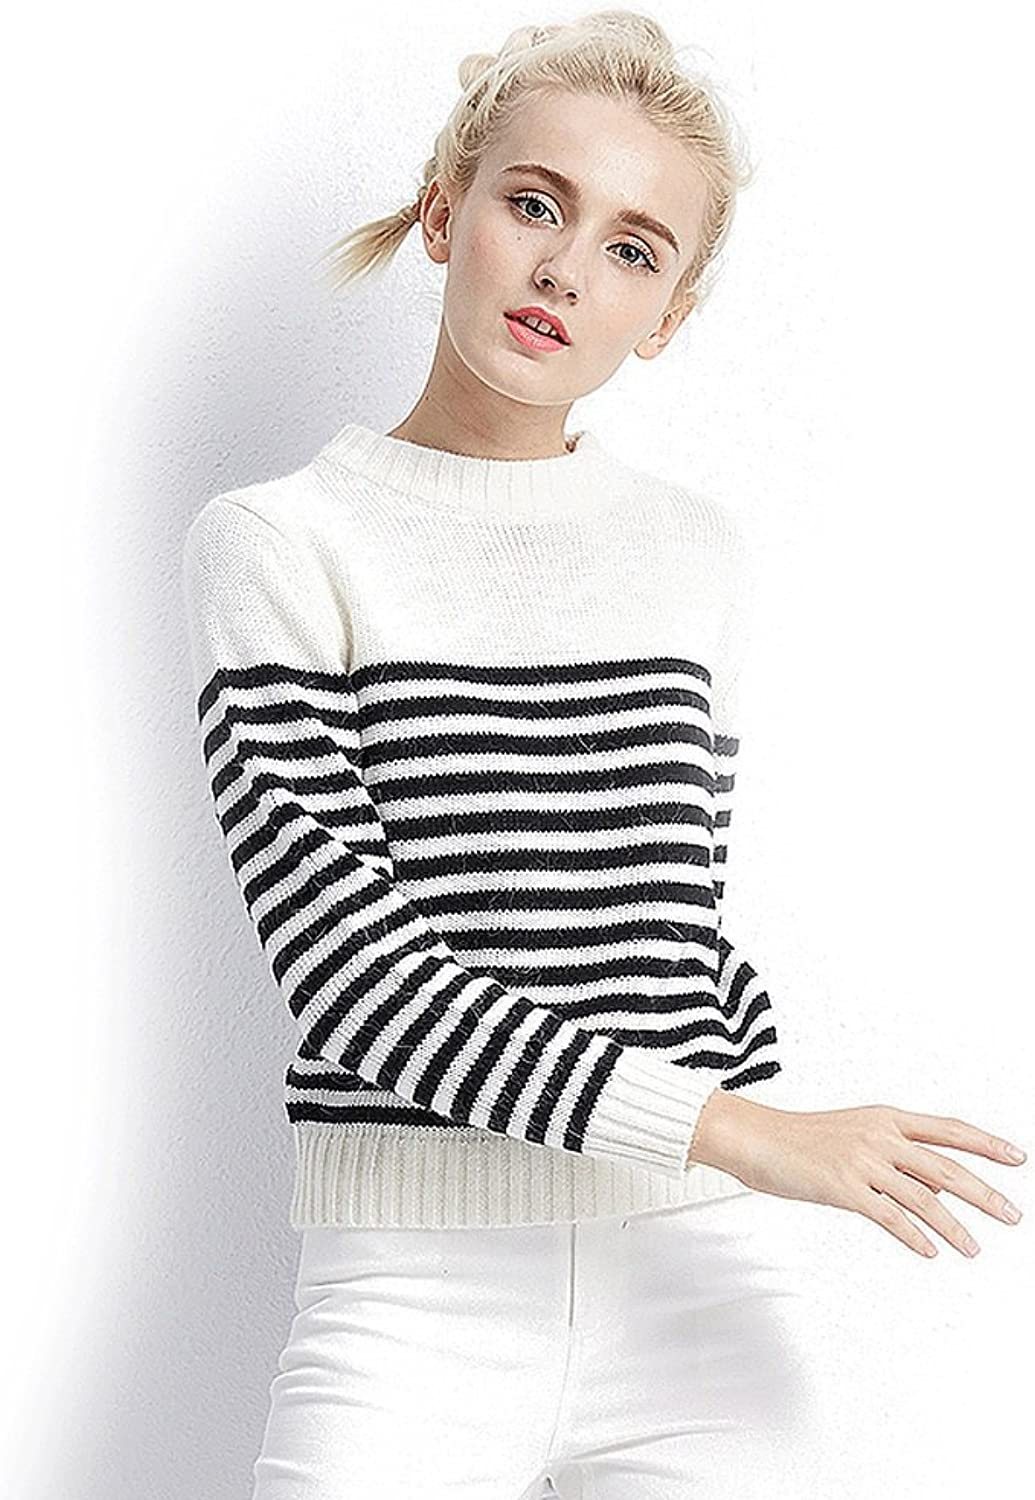 Winter sweater women's blouse black and white striped short clothes